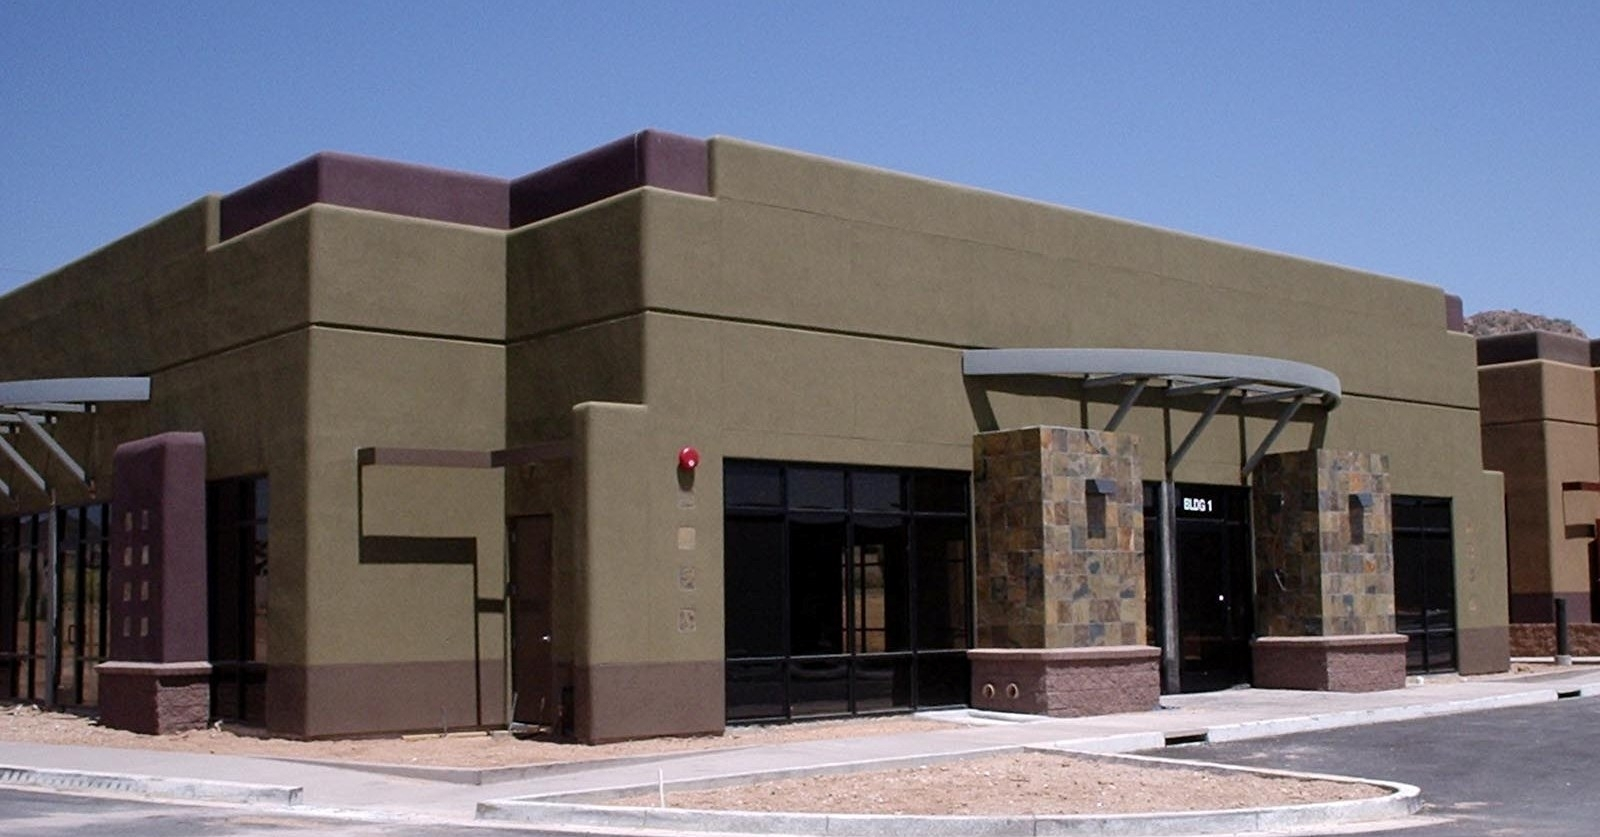 2525 W Carefree Hwy, Phoenix AZ 85085 Office Medical Building